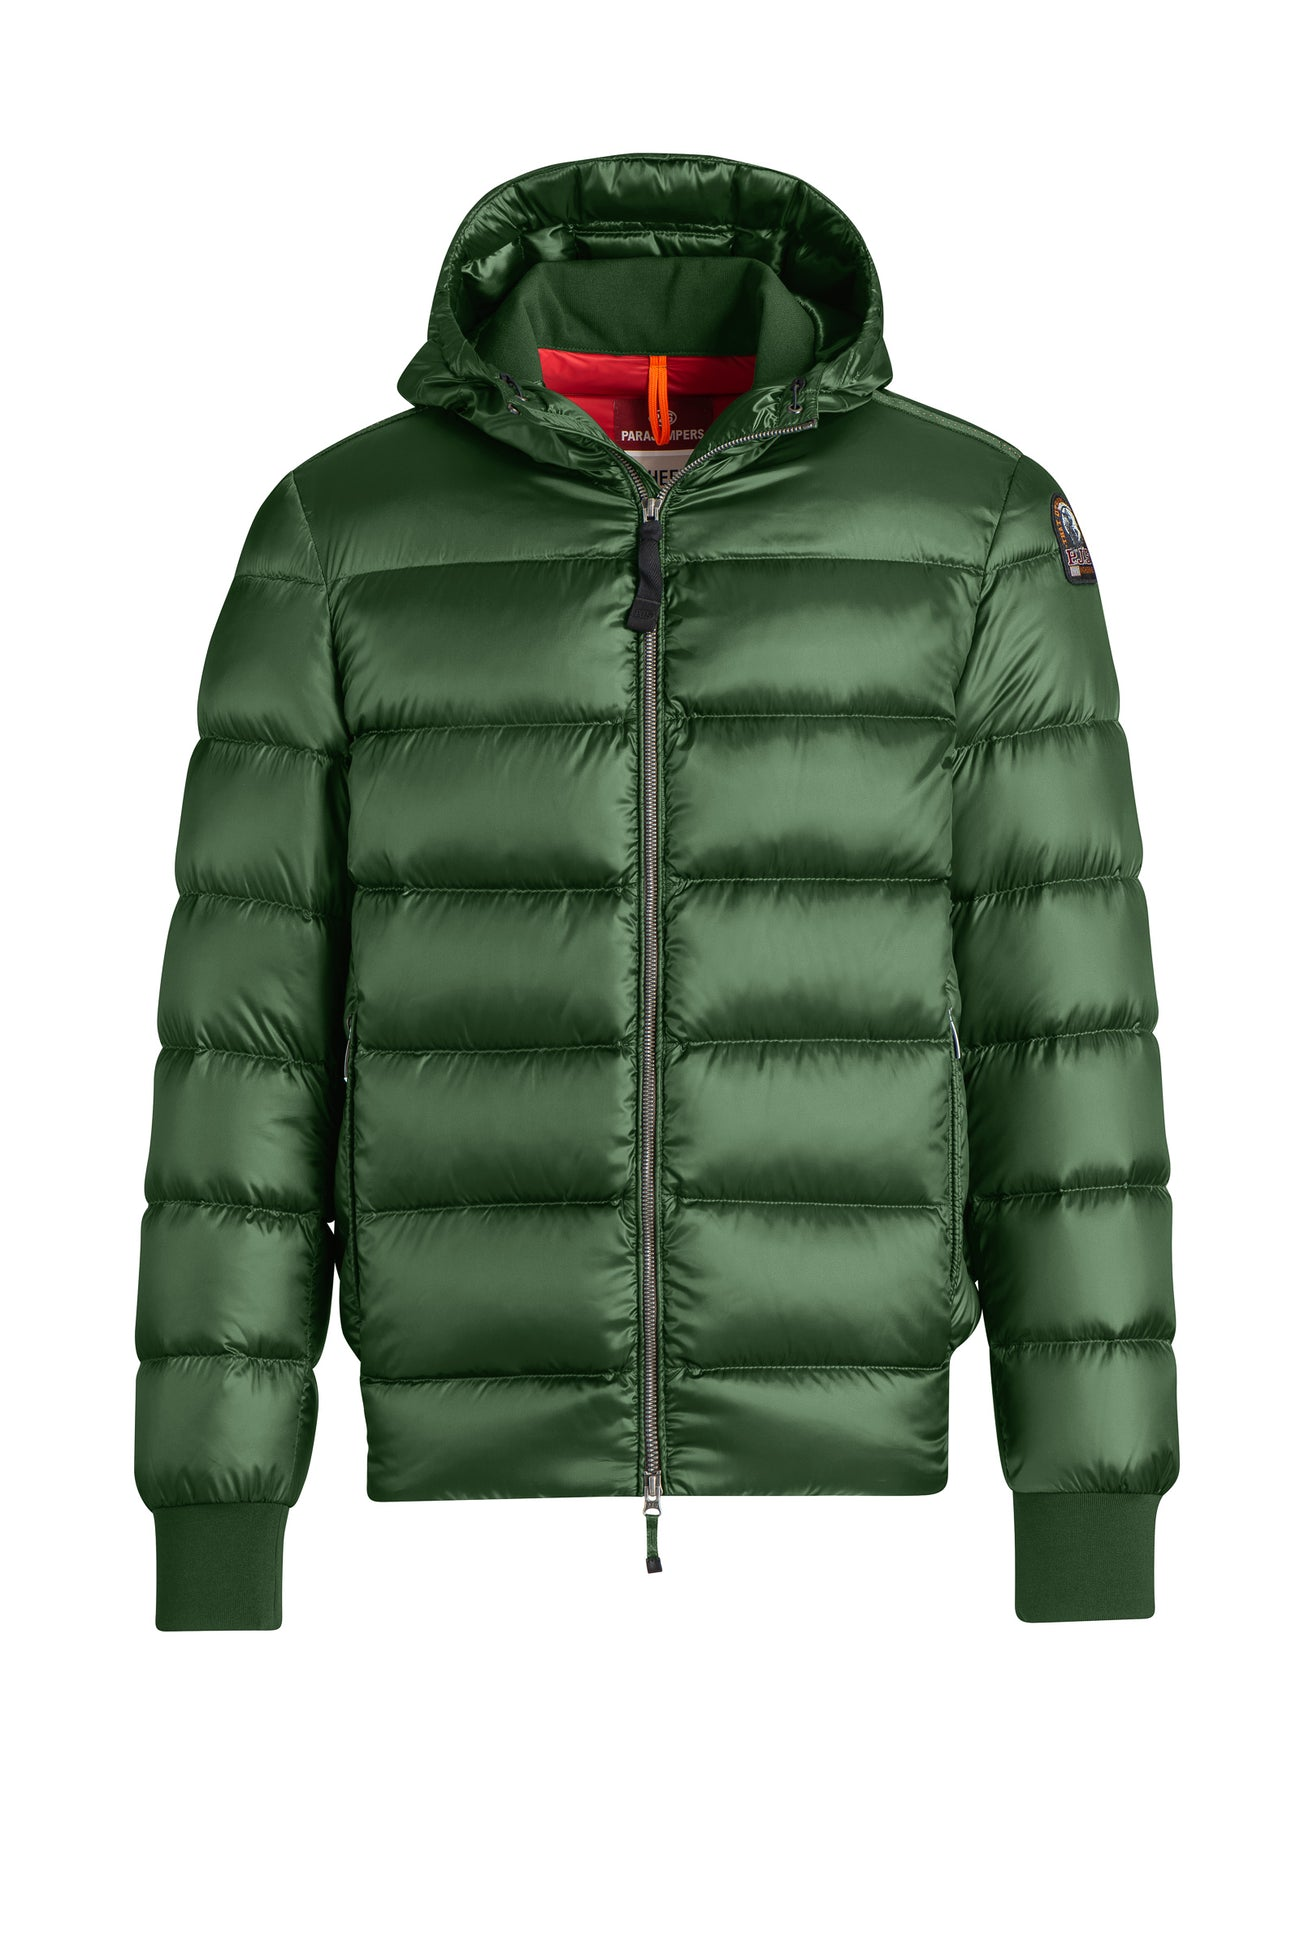 PARAJUMPERS Pharell Bomber Jacket | Forest Green - Capsule NYC